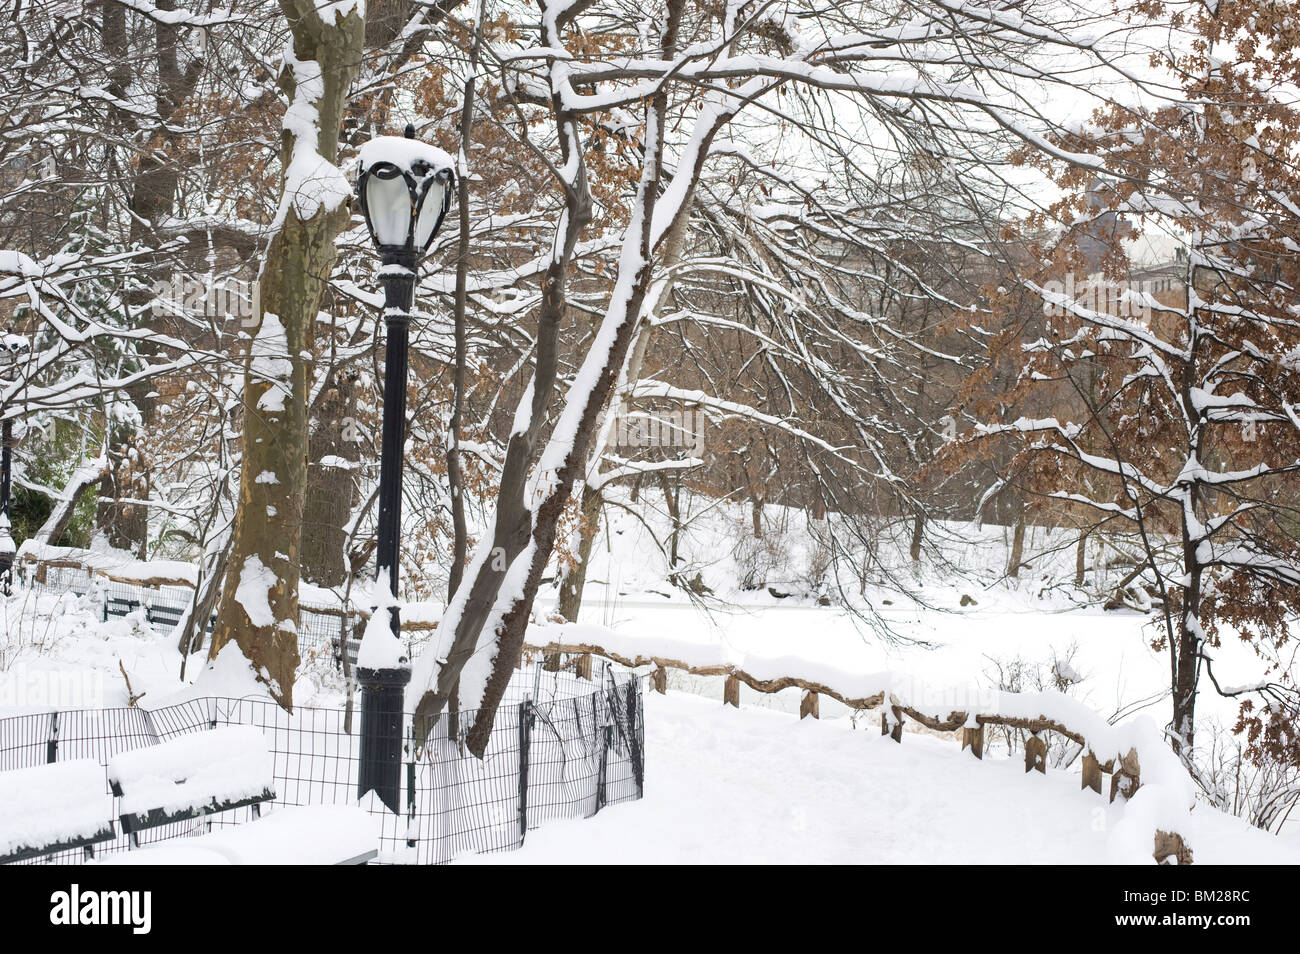 The Ramble in Central Park after a snowstorm, New York City, New York State, USA - Stock Image